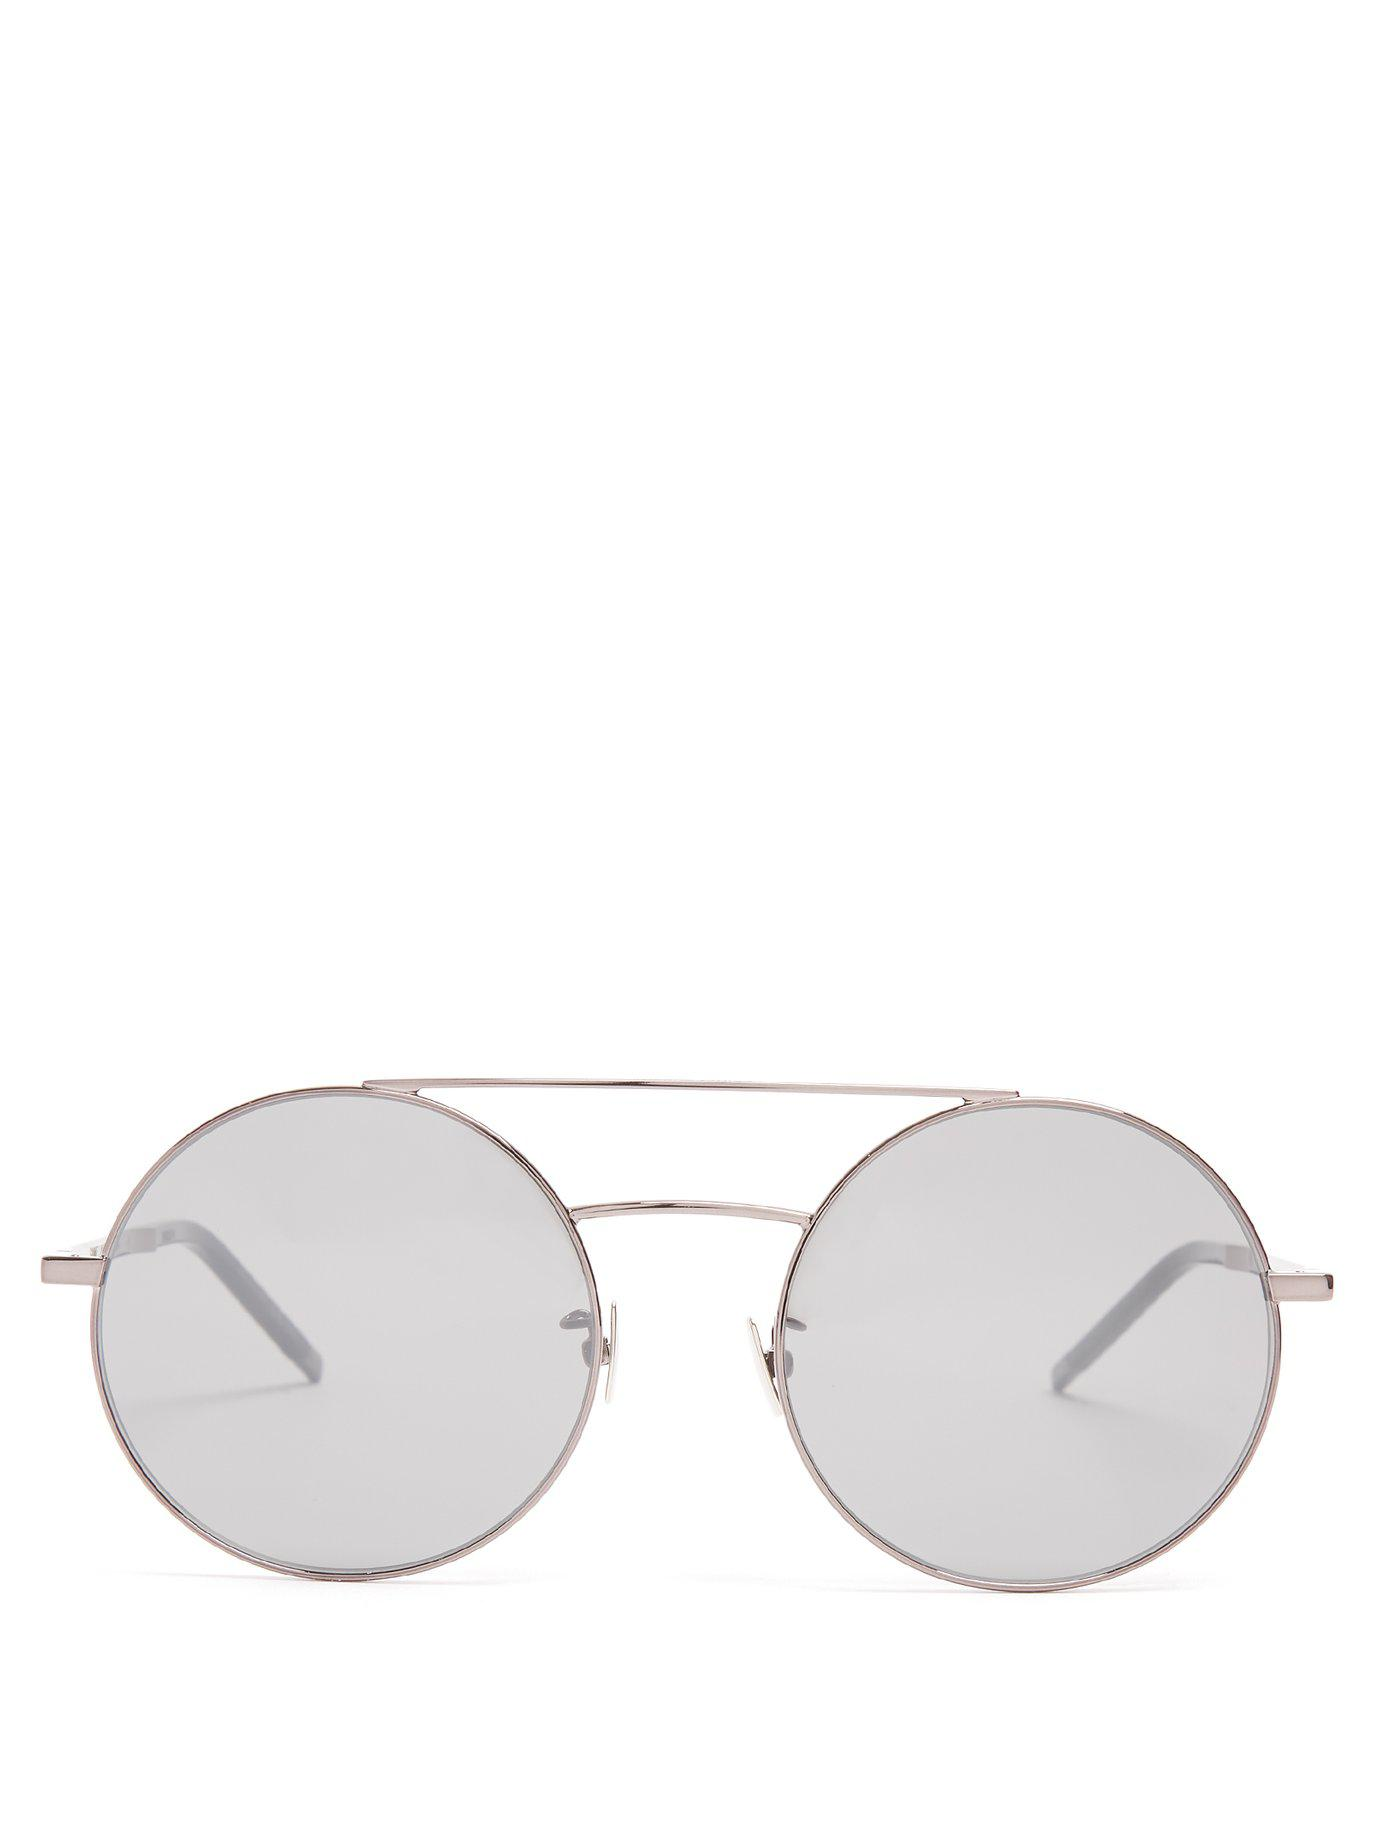 5b5040d2e6b Lyst - Saint Laurent Round-frame Sunglasses in Metallic